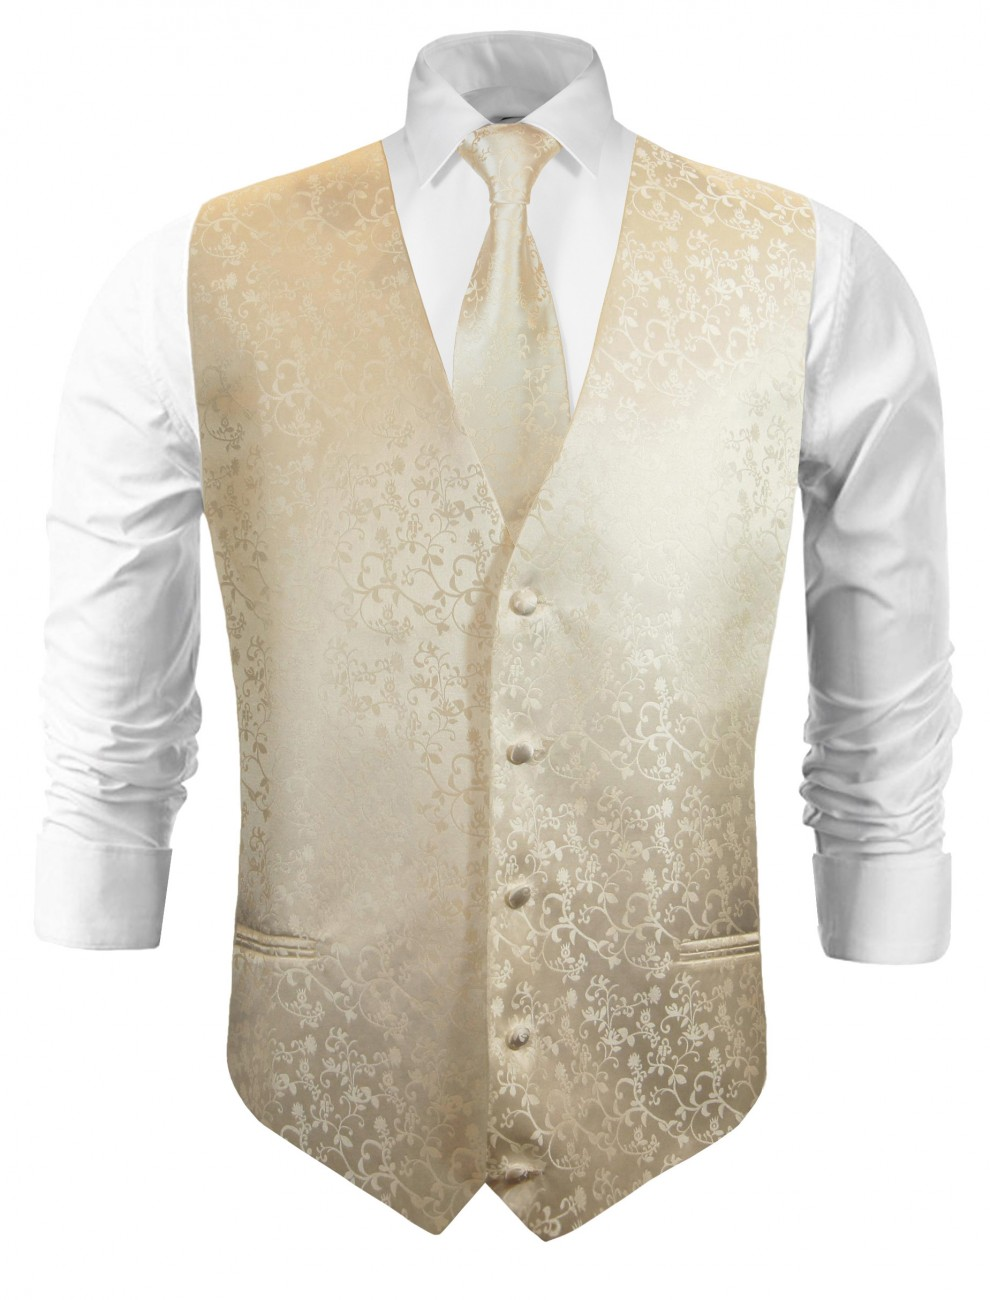 Wedding vest with necktie champagne floral